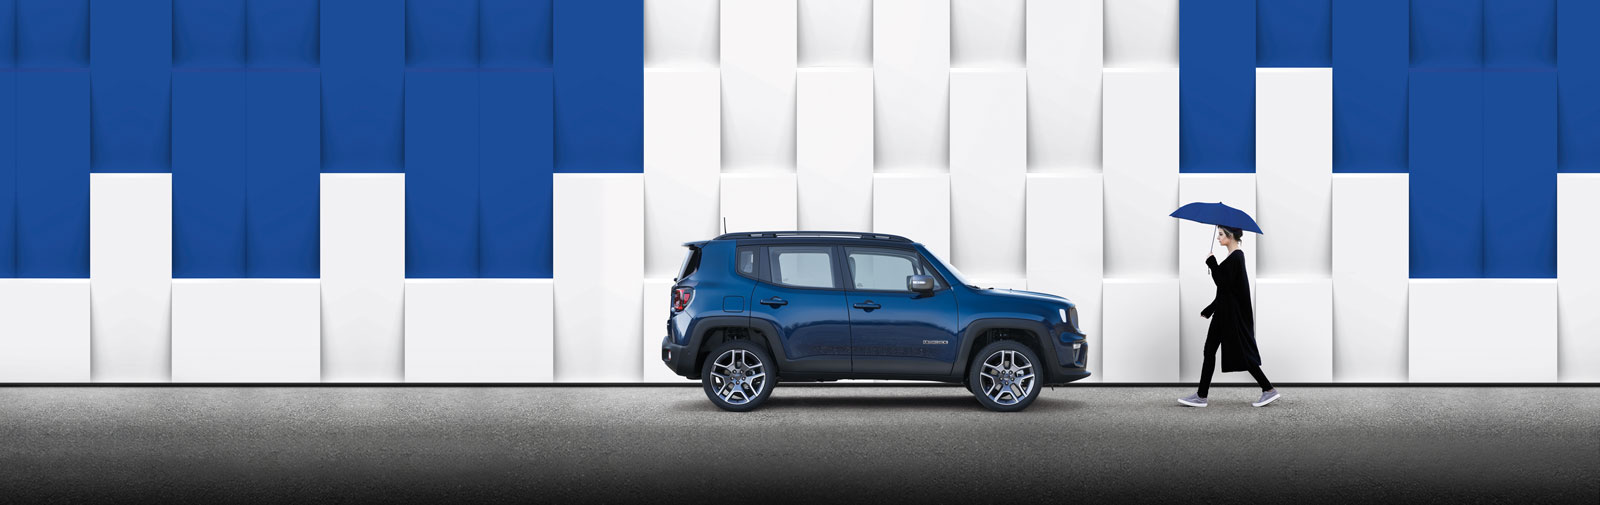 Jeep Renegade Leasys